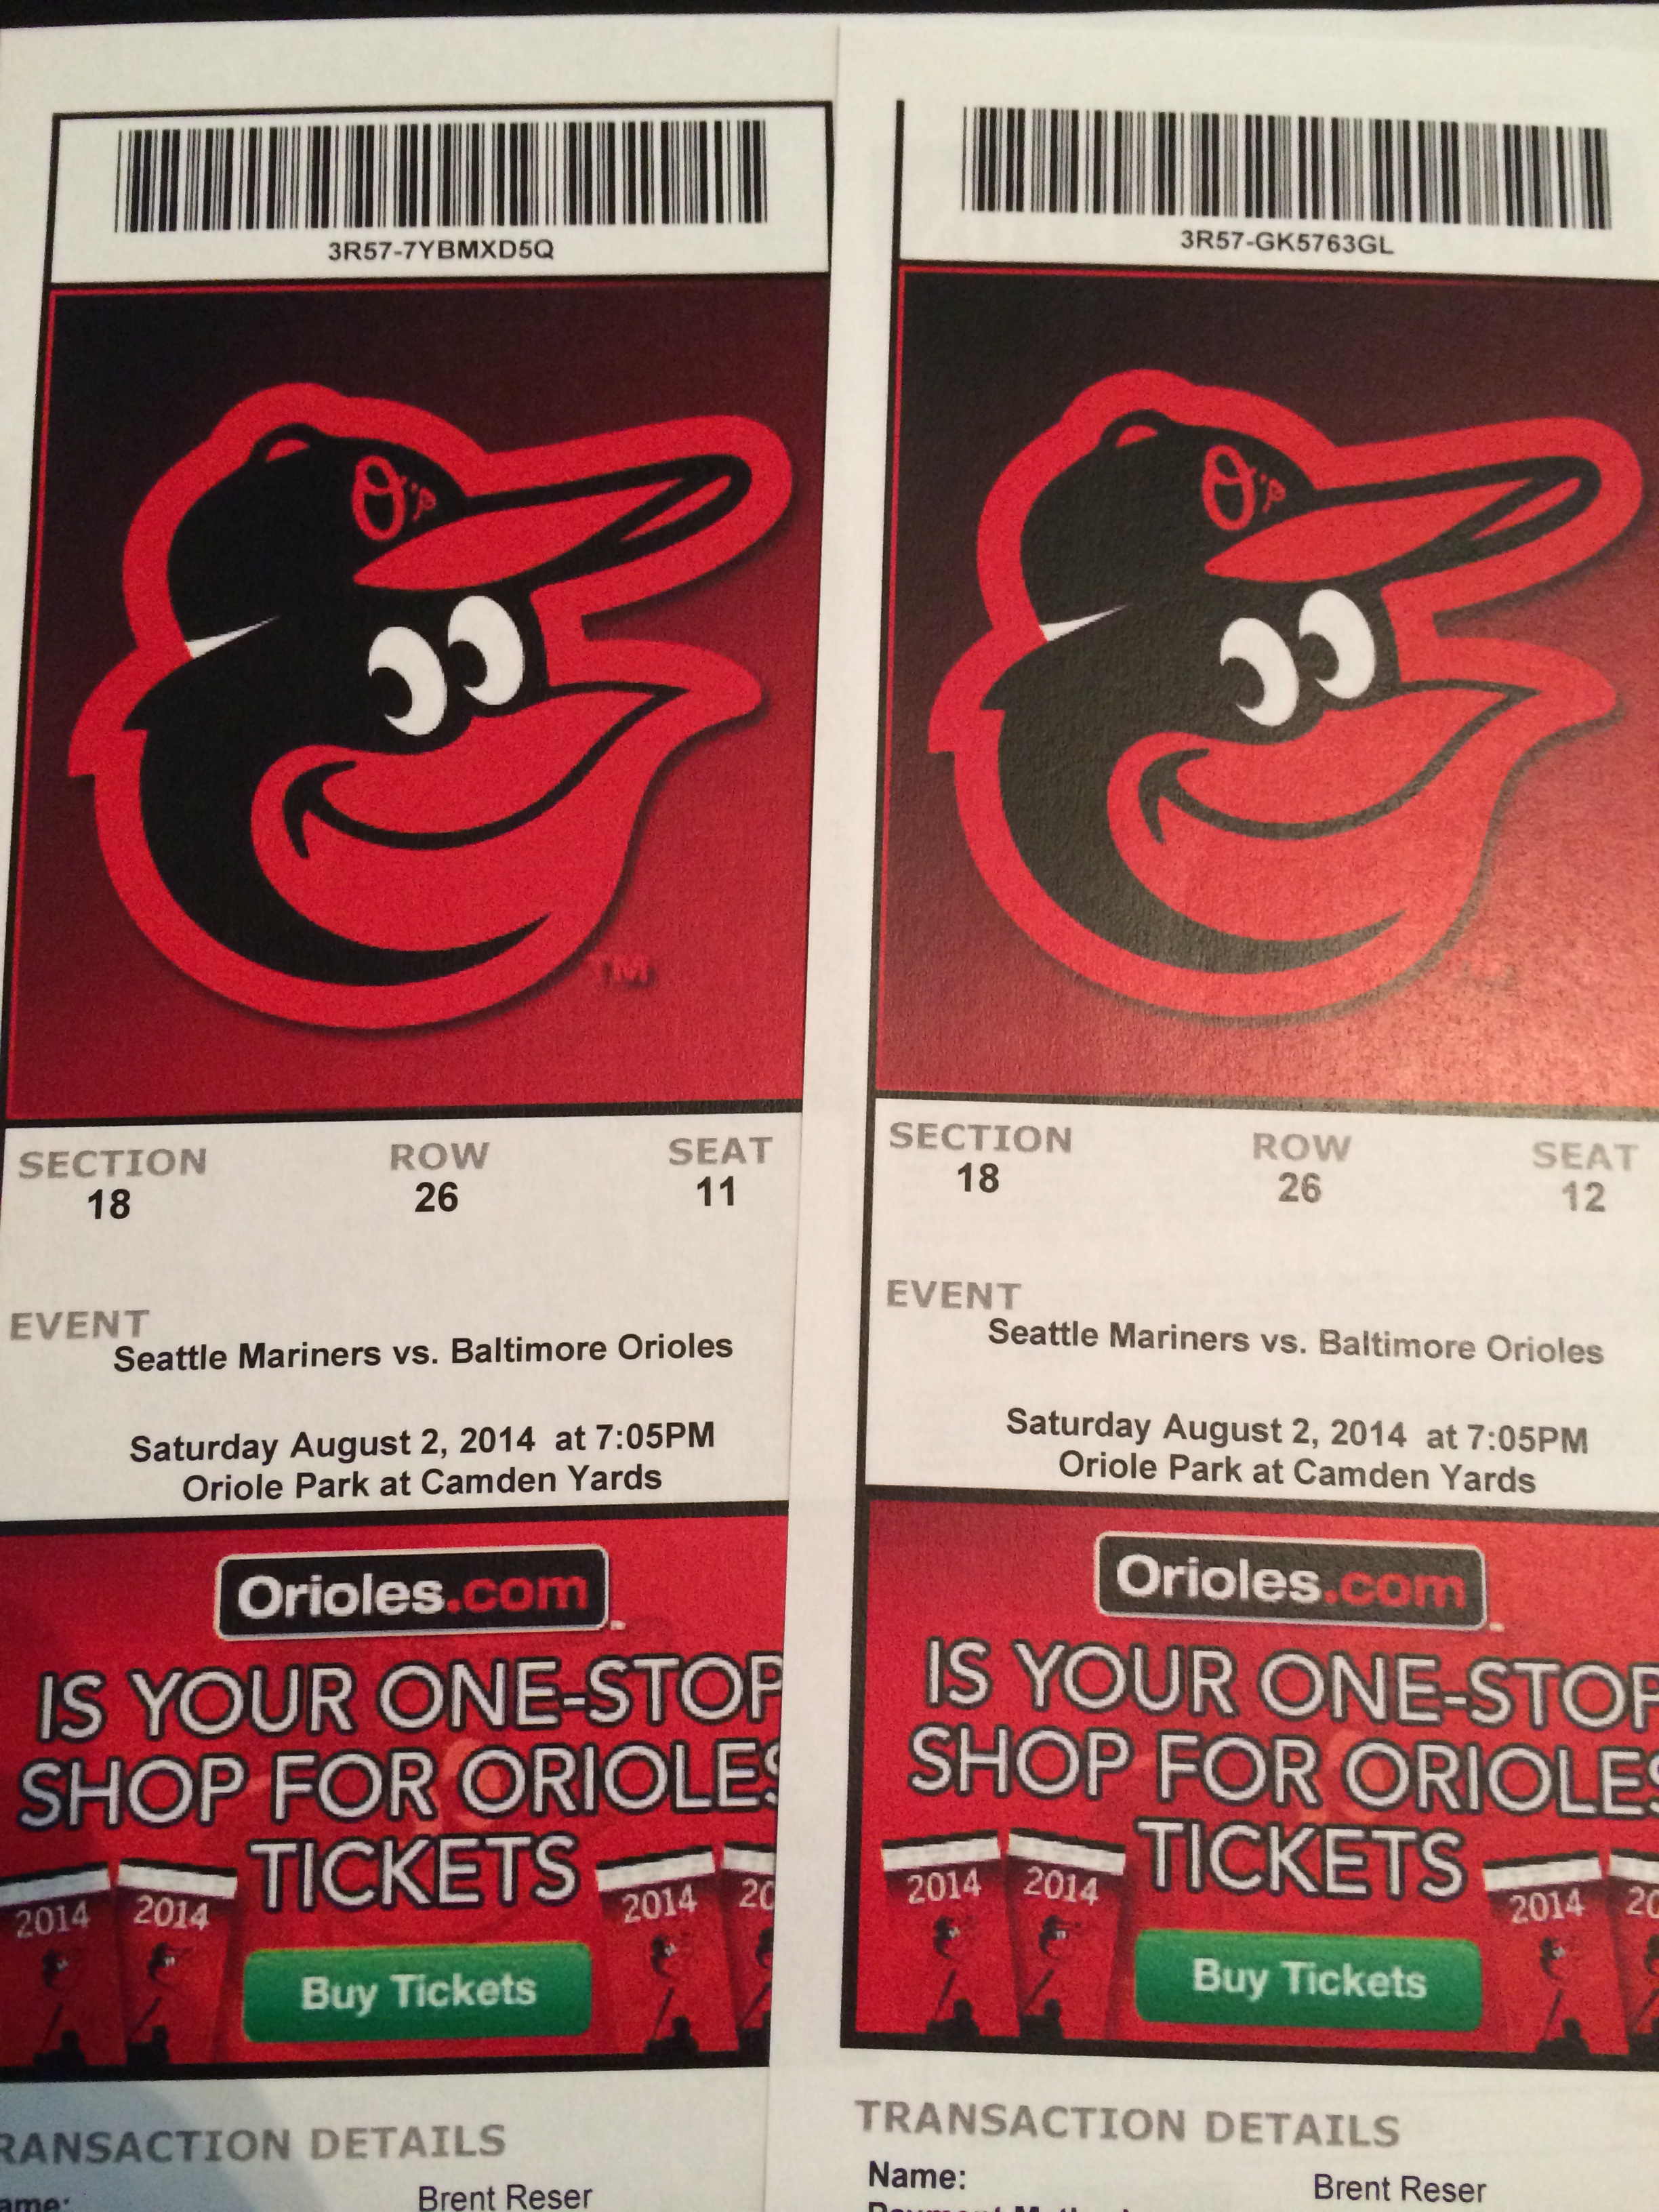 Our tickets for tomorrow's Baltimore Orioles vs. Seattle Mariners game.